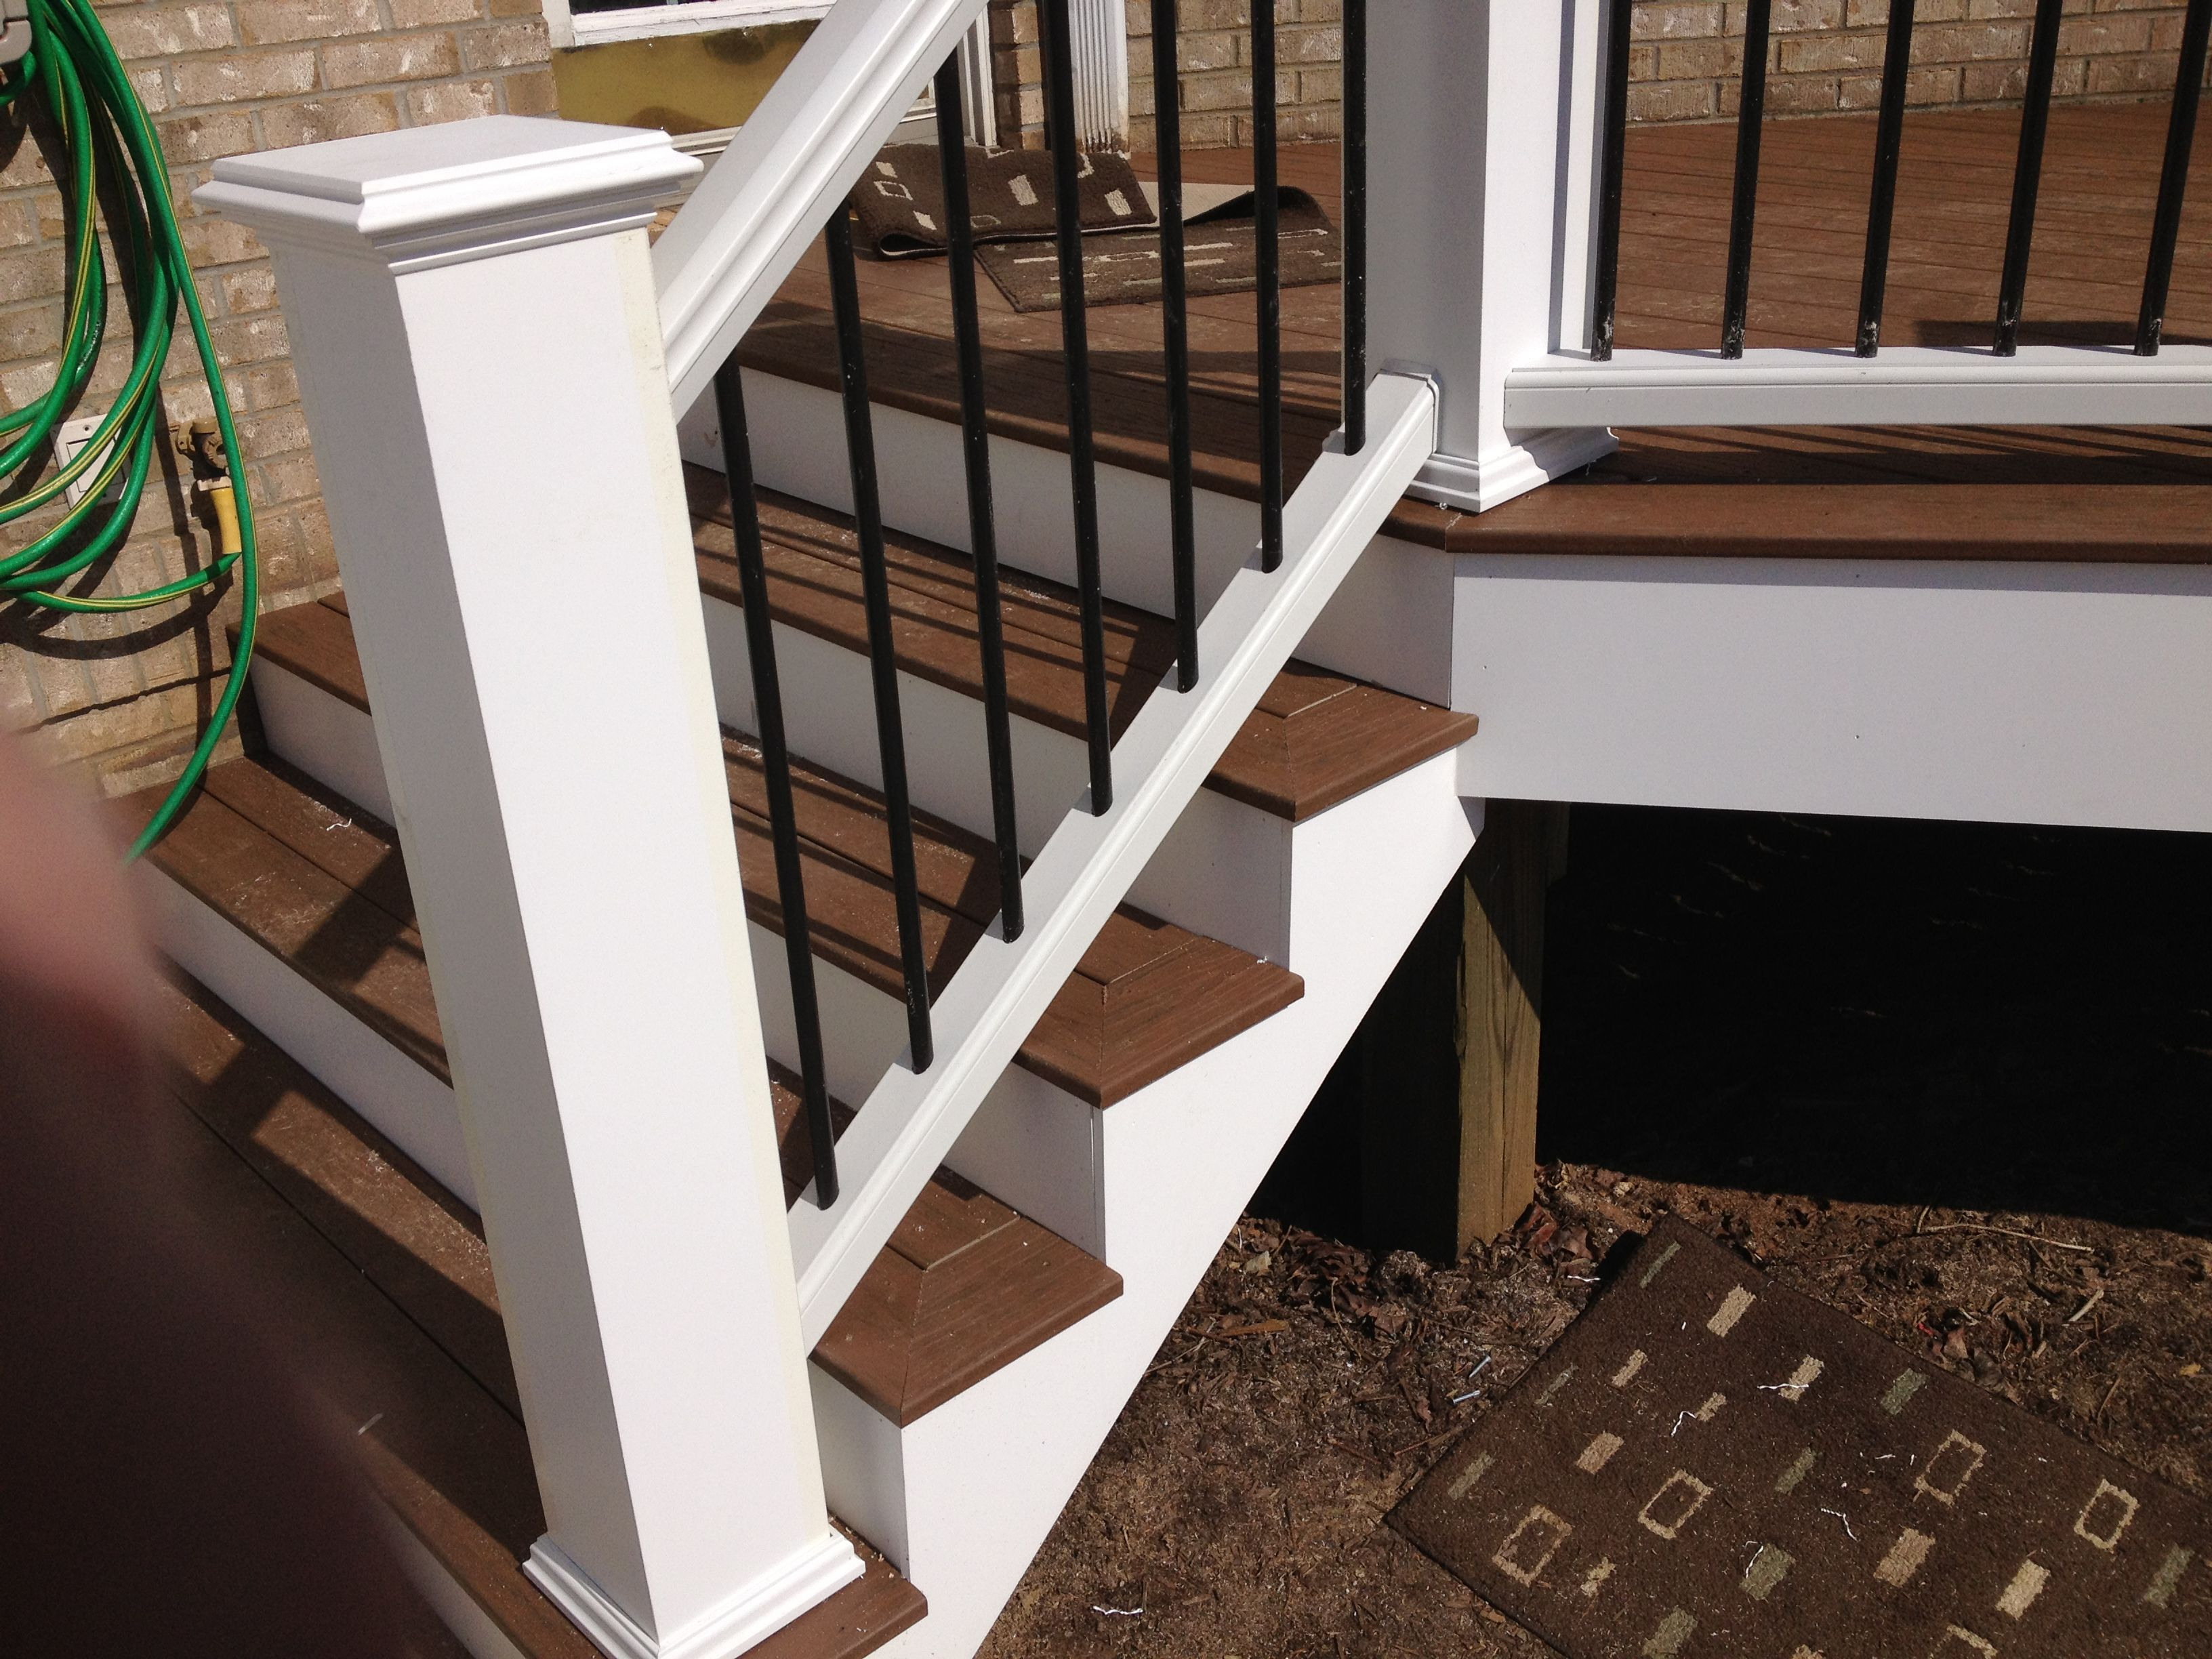 Build Newel Post Picture Framed Stairs With Trex Railings And Oversized Newel Posts